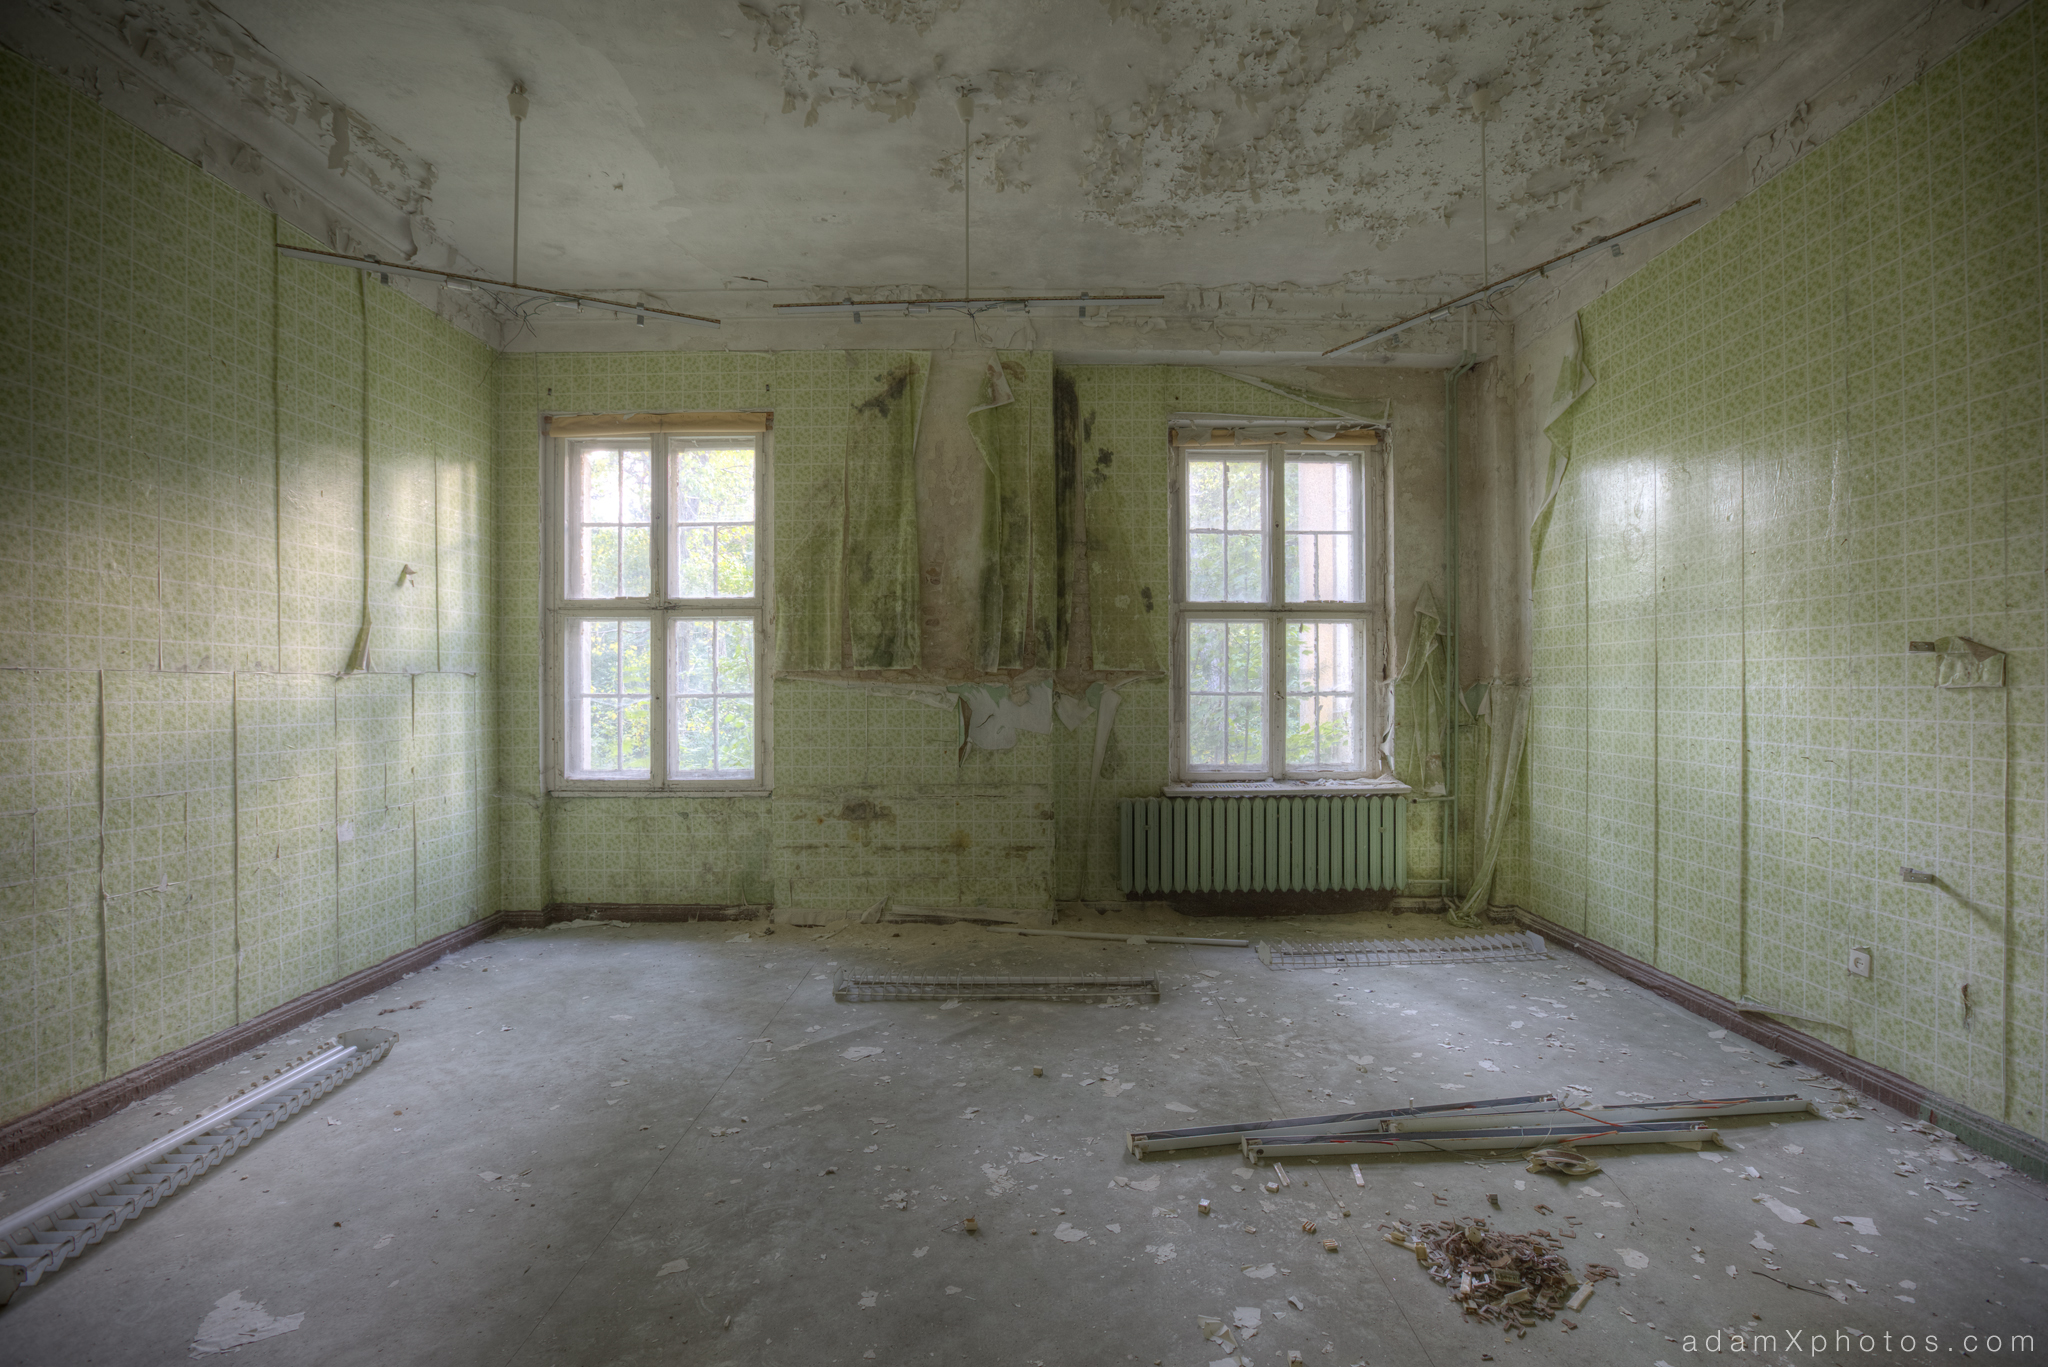 Adam X Urbex Urban Exploration Germany Juterbog School Soviet Russian Abandoned Lost Decay Green room tiled tiled